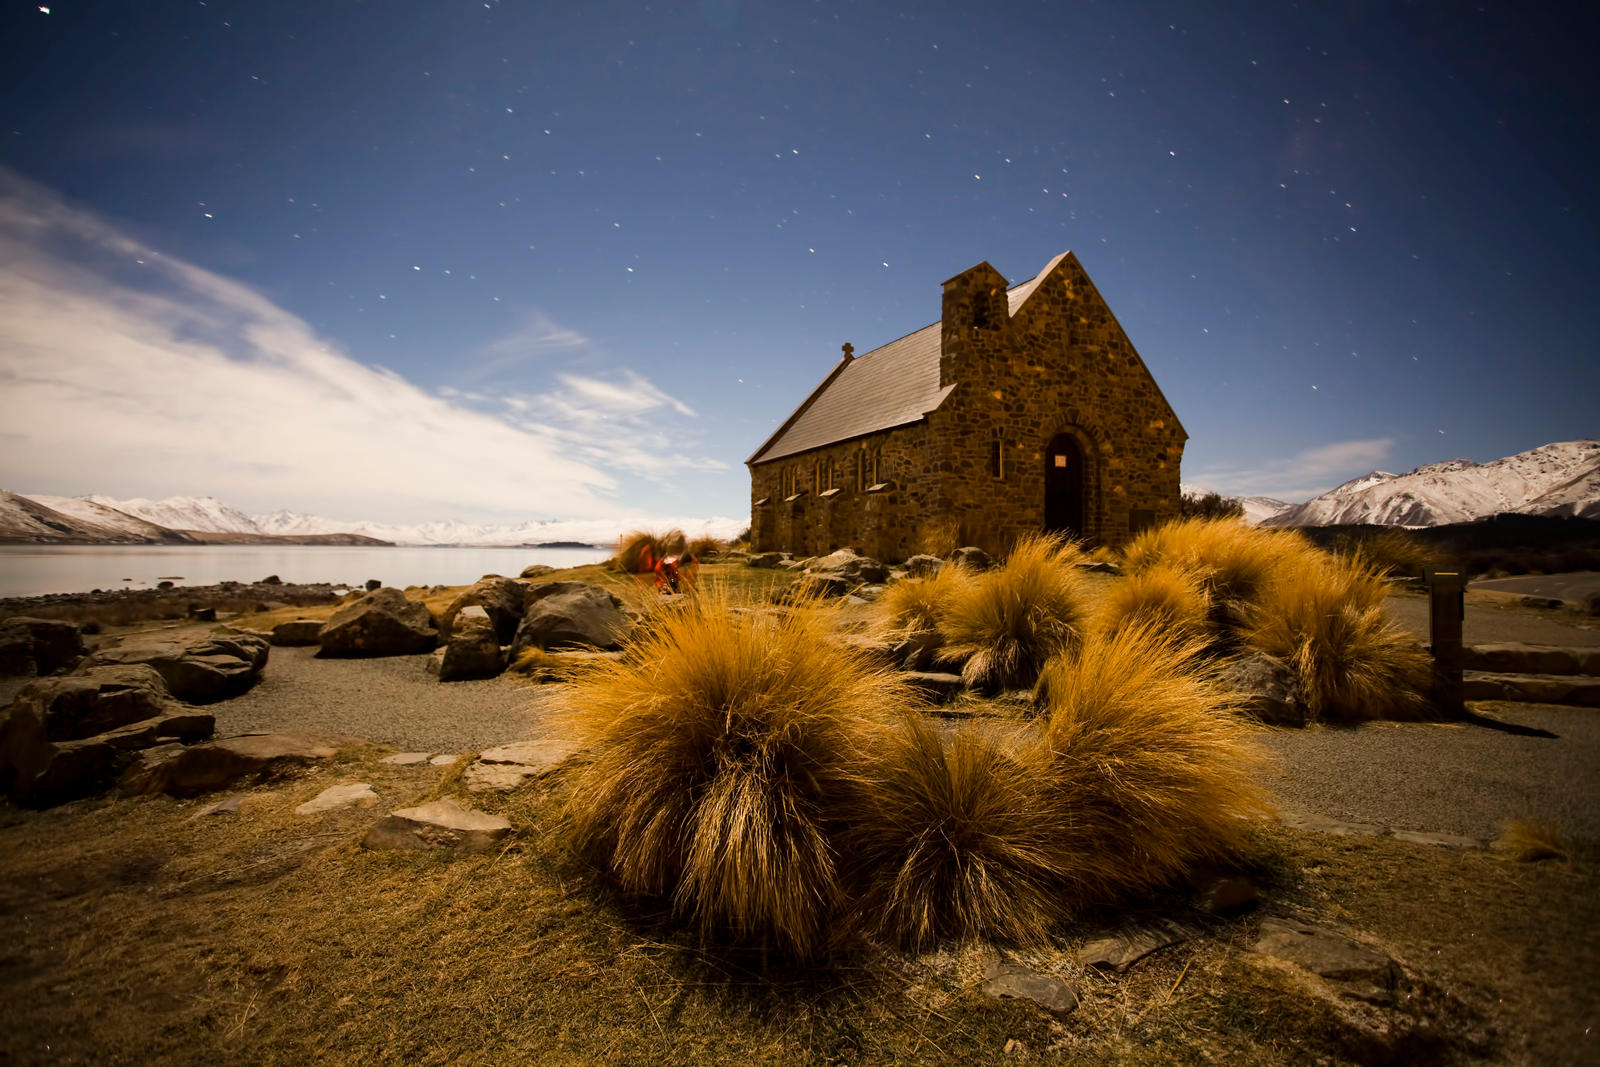 Church of The Good Shepherd by M-Hinai